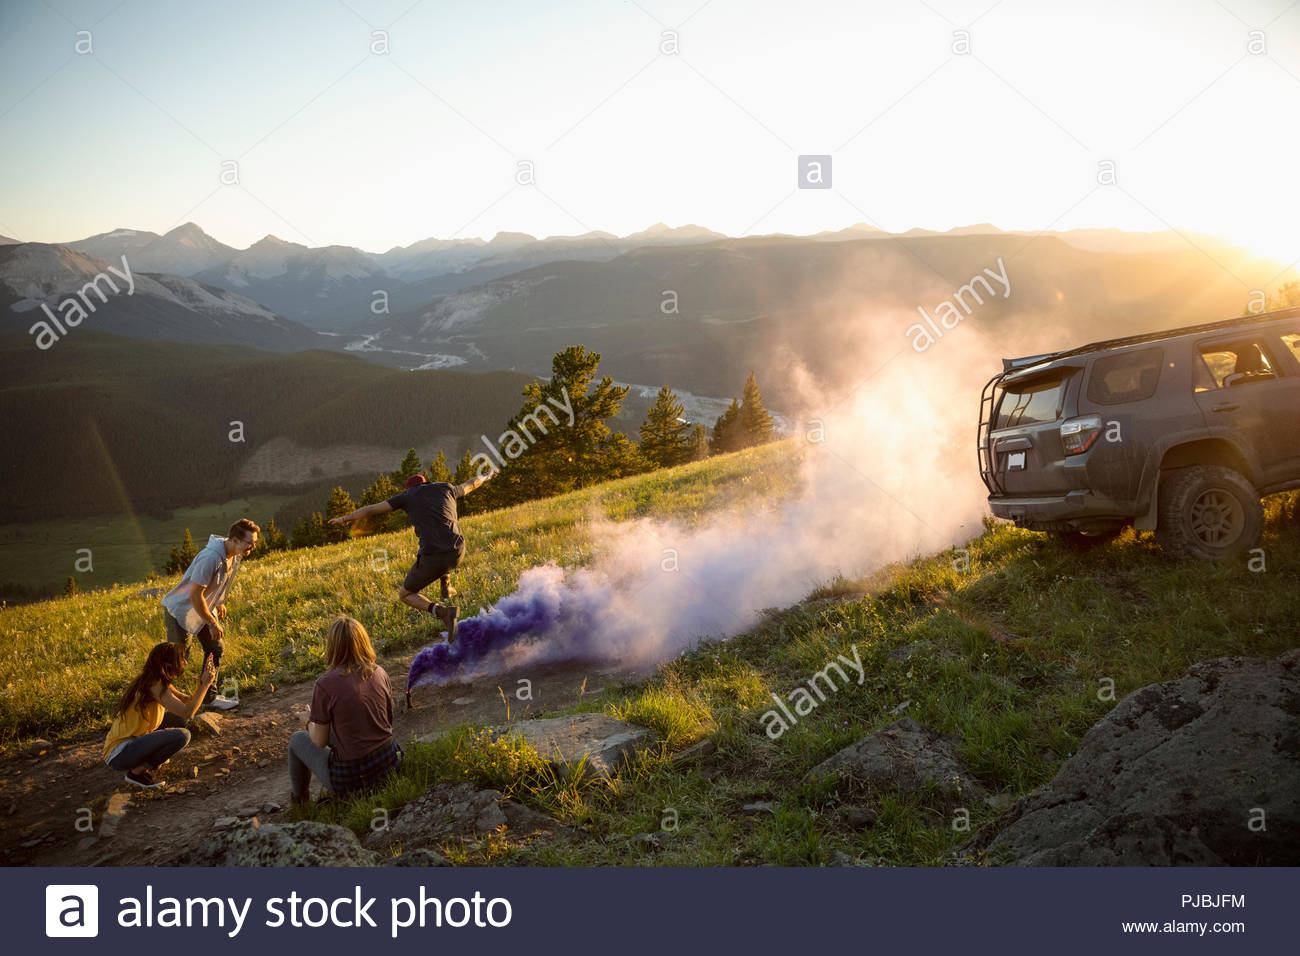 Friends camping, playing with colorful smoke bombs in sunny, idyllic mountain field, Alberta, Canada - Stock Image